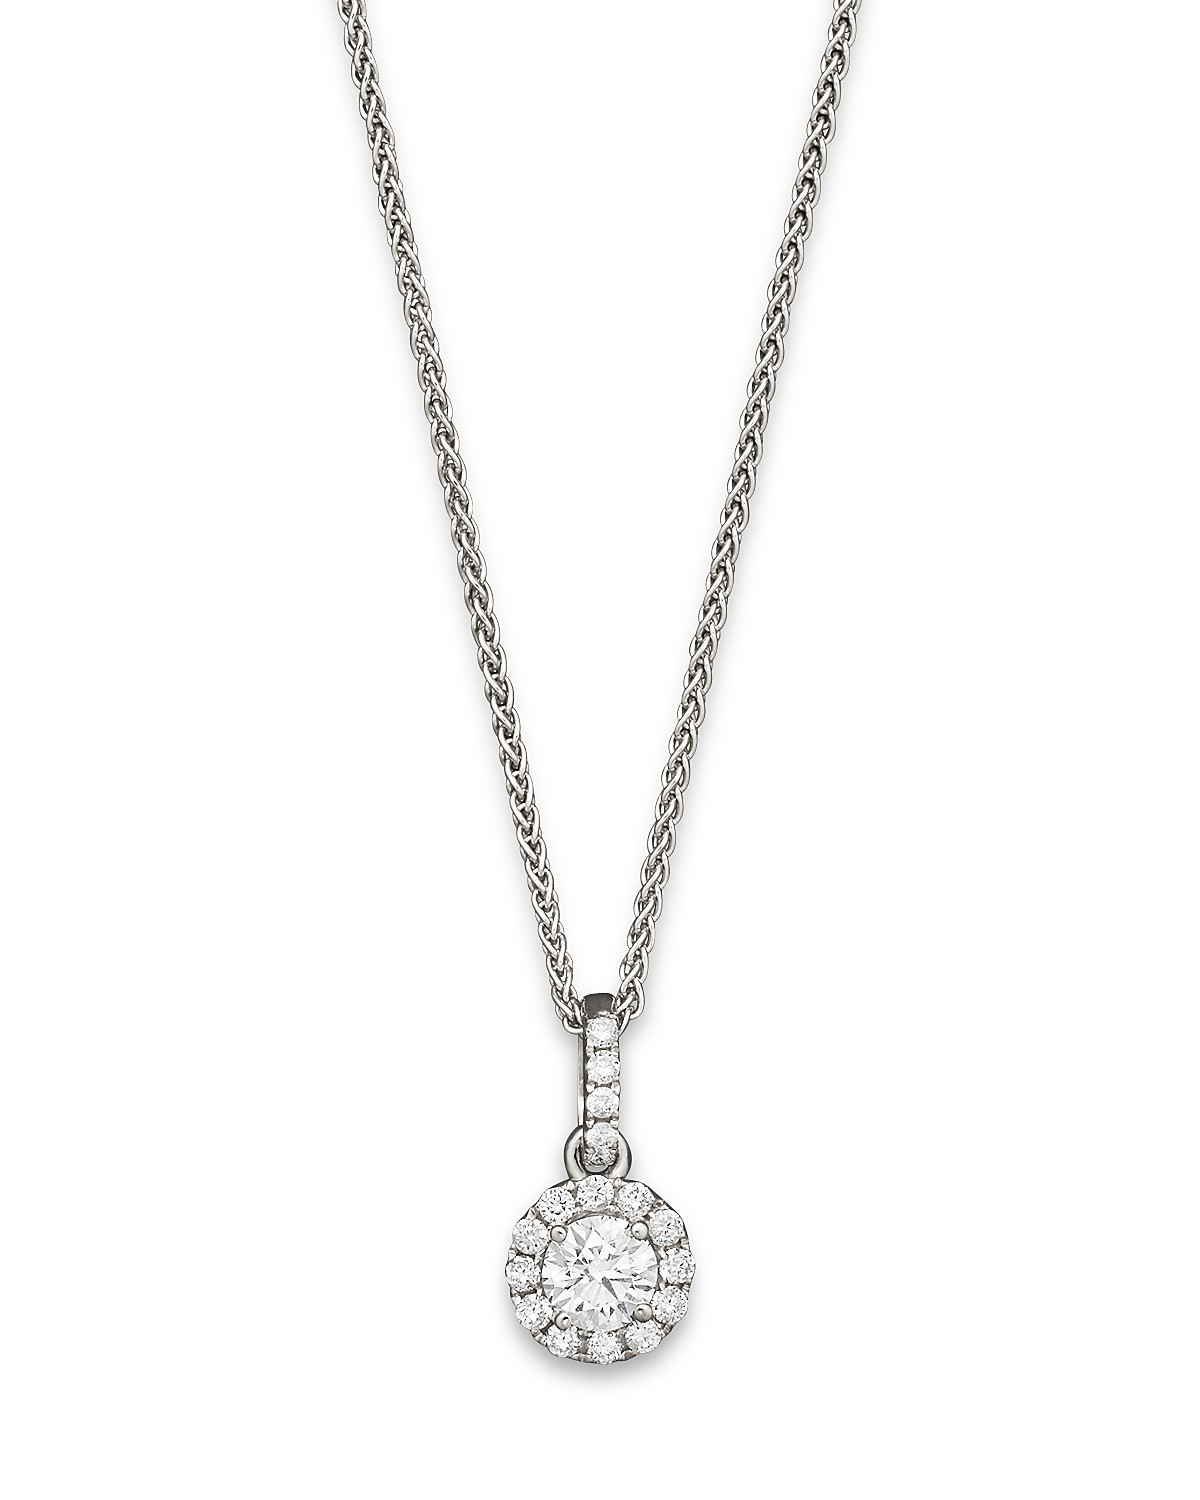 in bezel now g set thursday solitaire chain on diamond business white order necklace pendant ships gold days ct